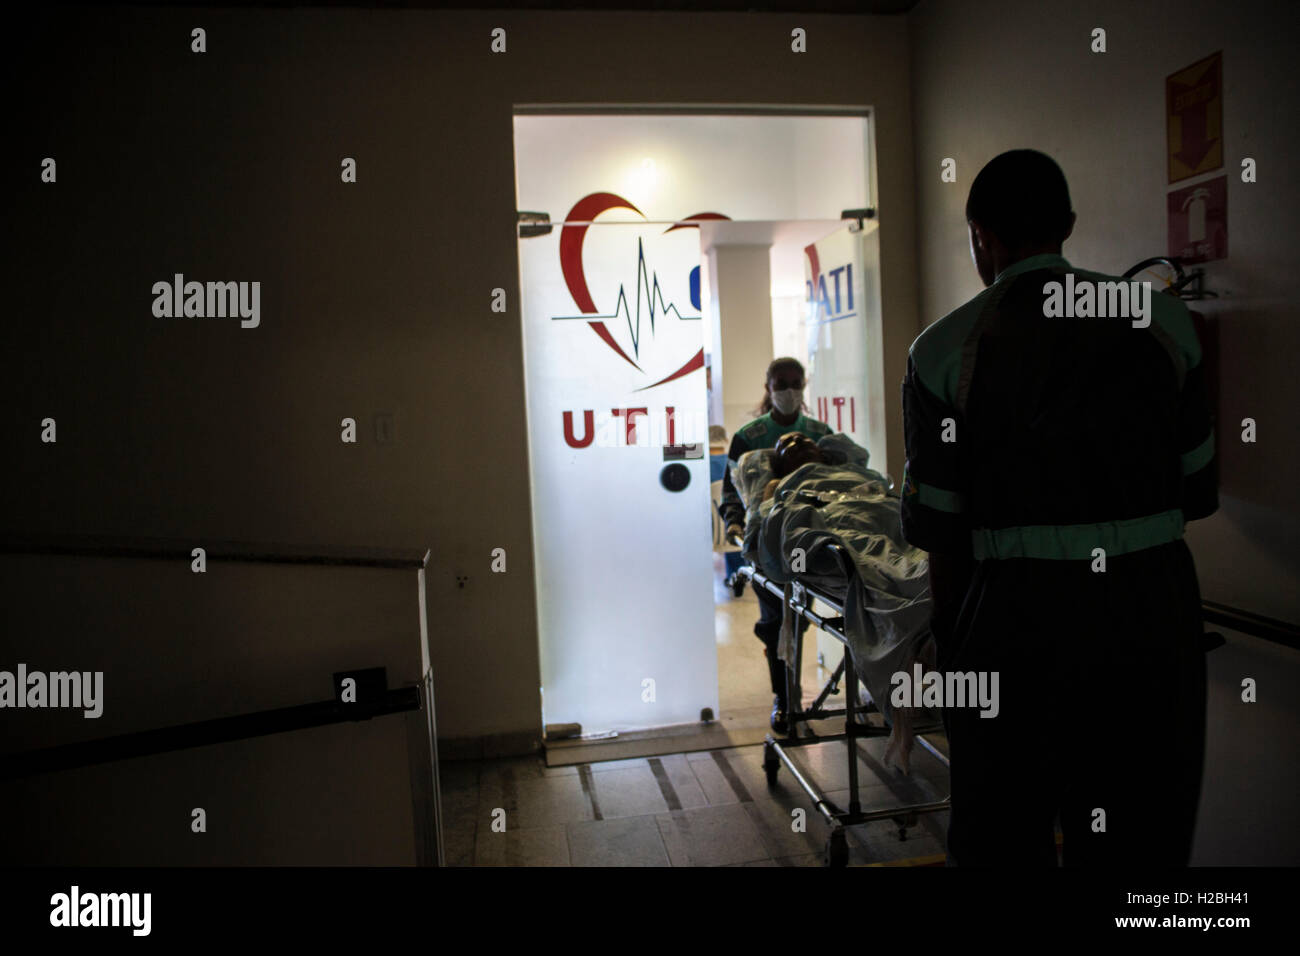 Patient enters an intensive care unit (ICU), a special department of a hospital or health care facility that provides - Stock Image